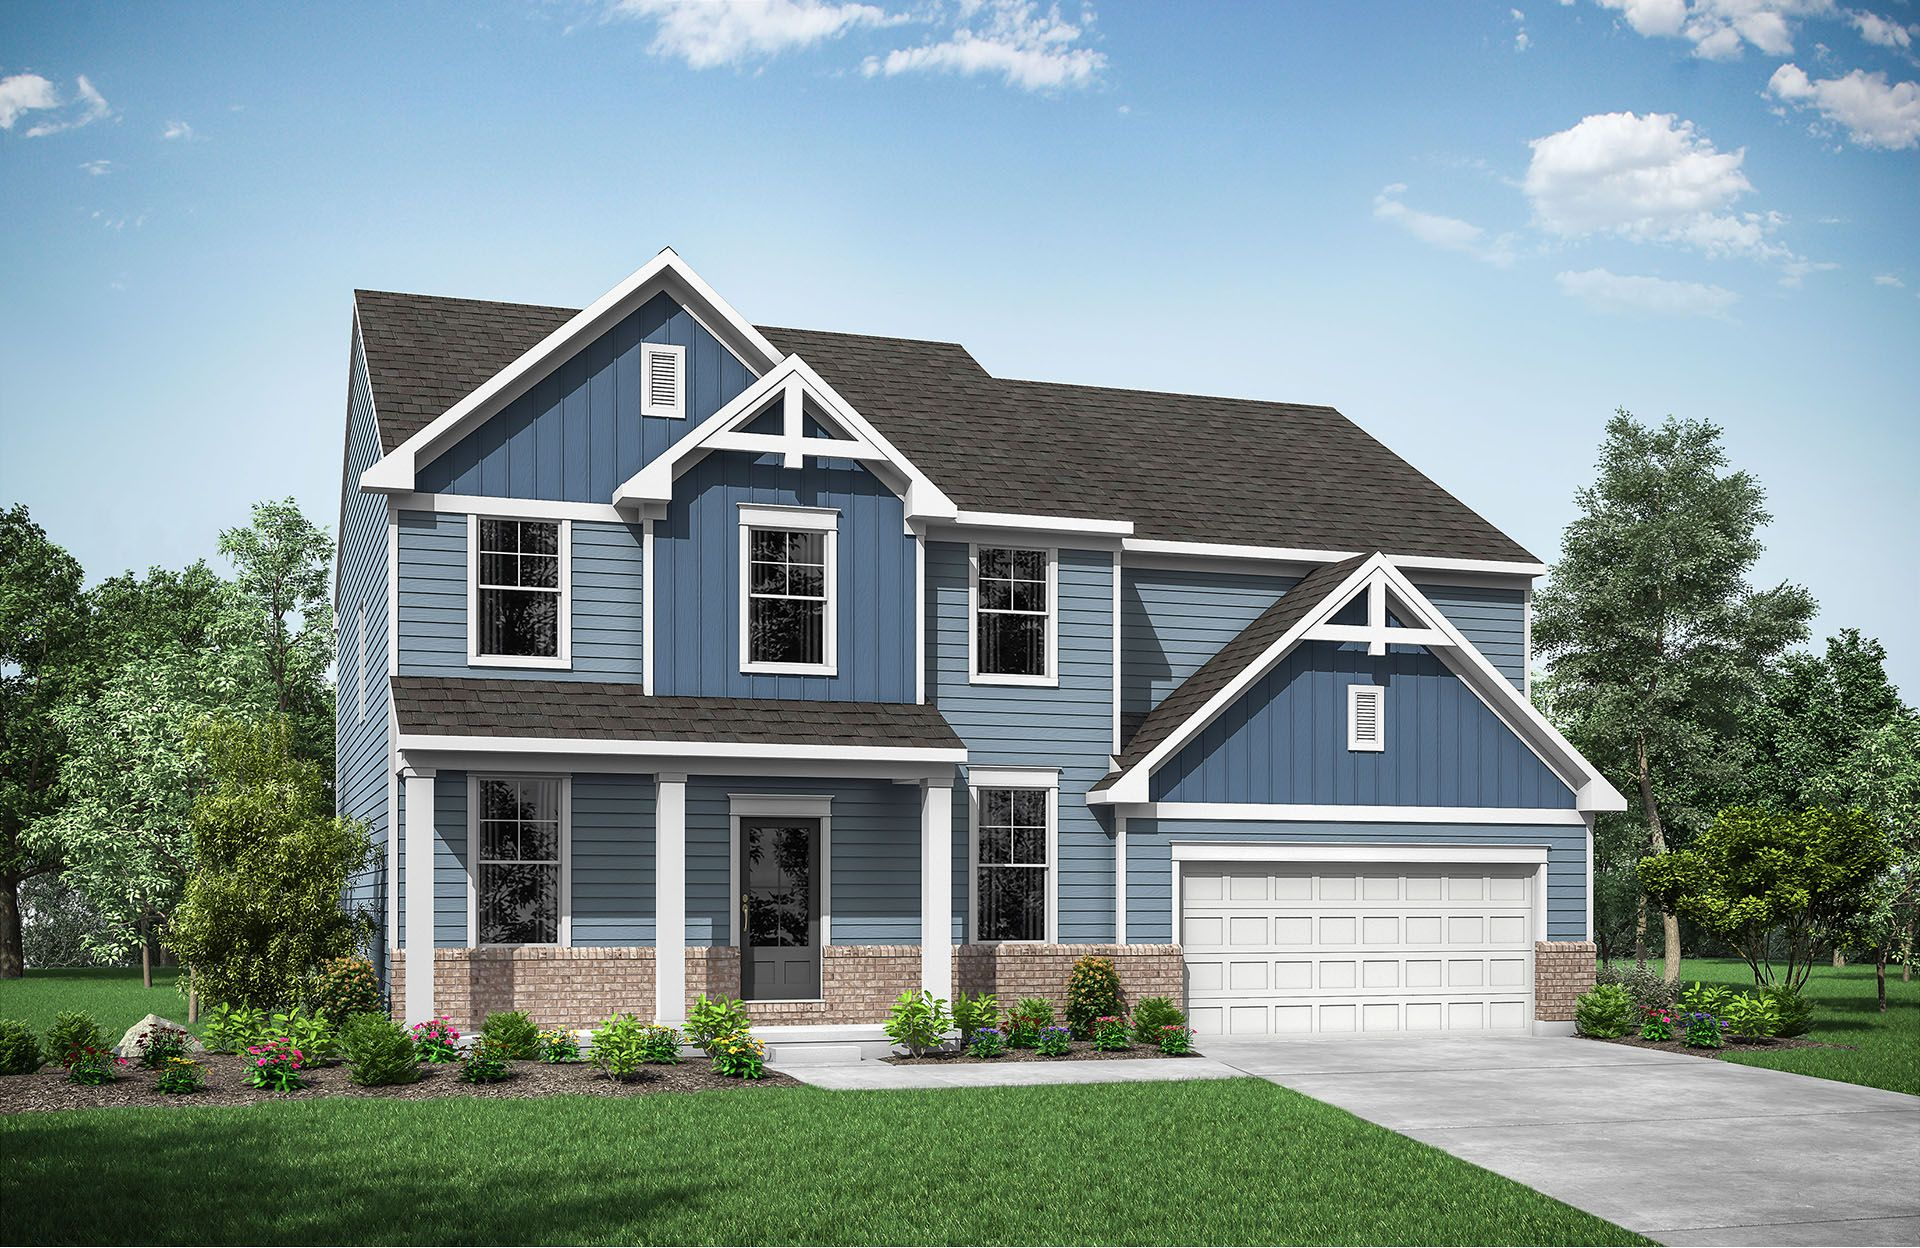 Single Family for Sale at Enclave At South Ridge - Fairborn 3416 Southway Ridge Erlanger, Kentucky 41018 United States